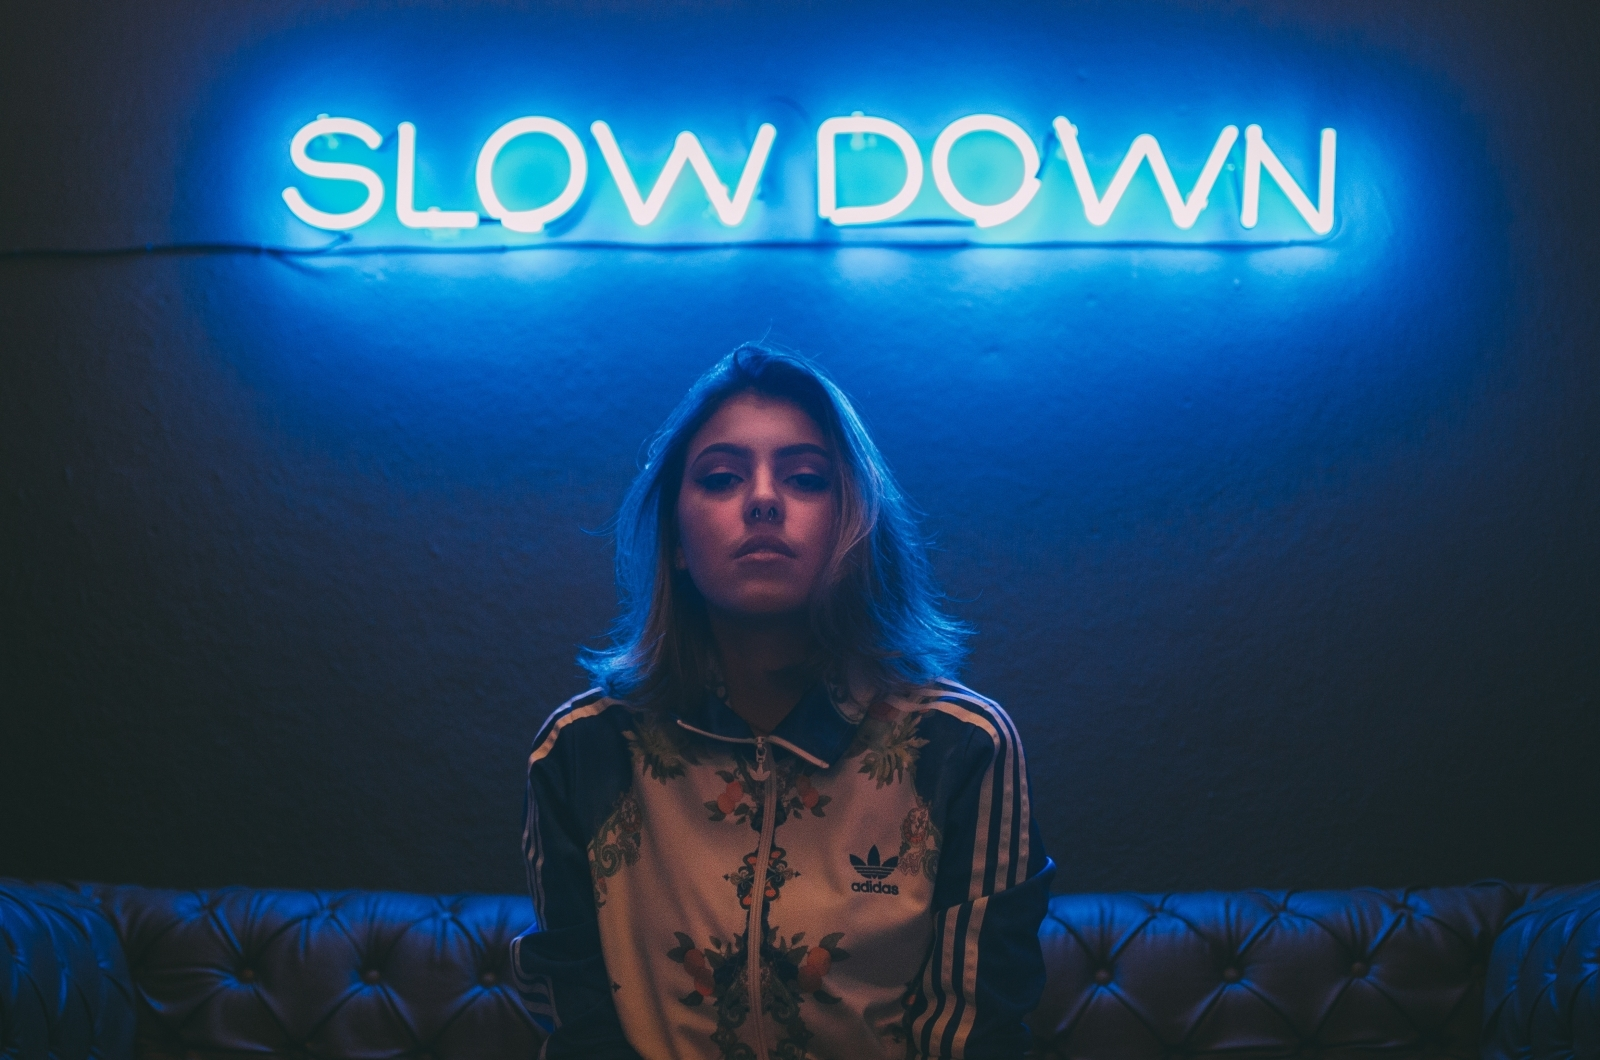 Woman in front of neon sign